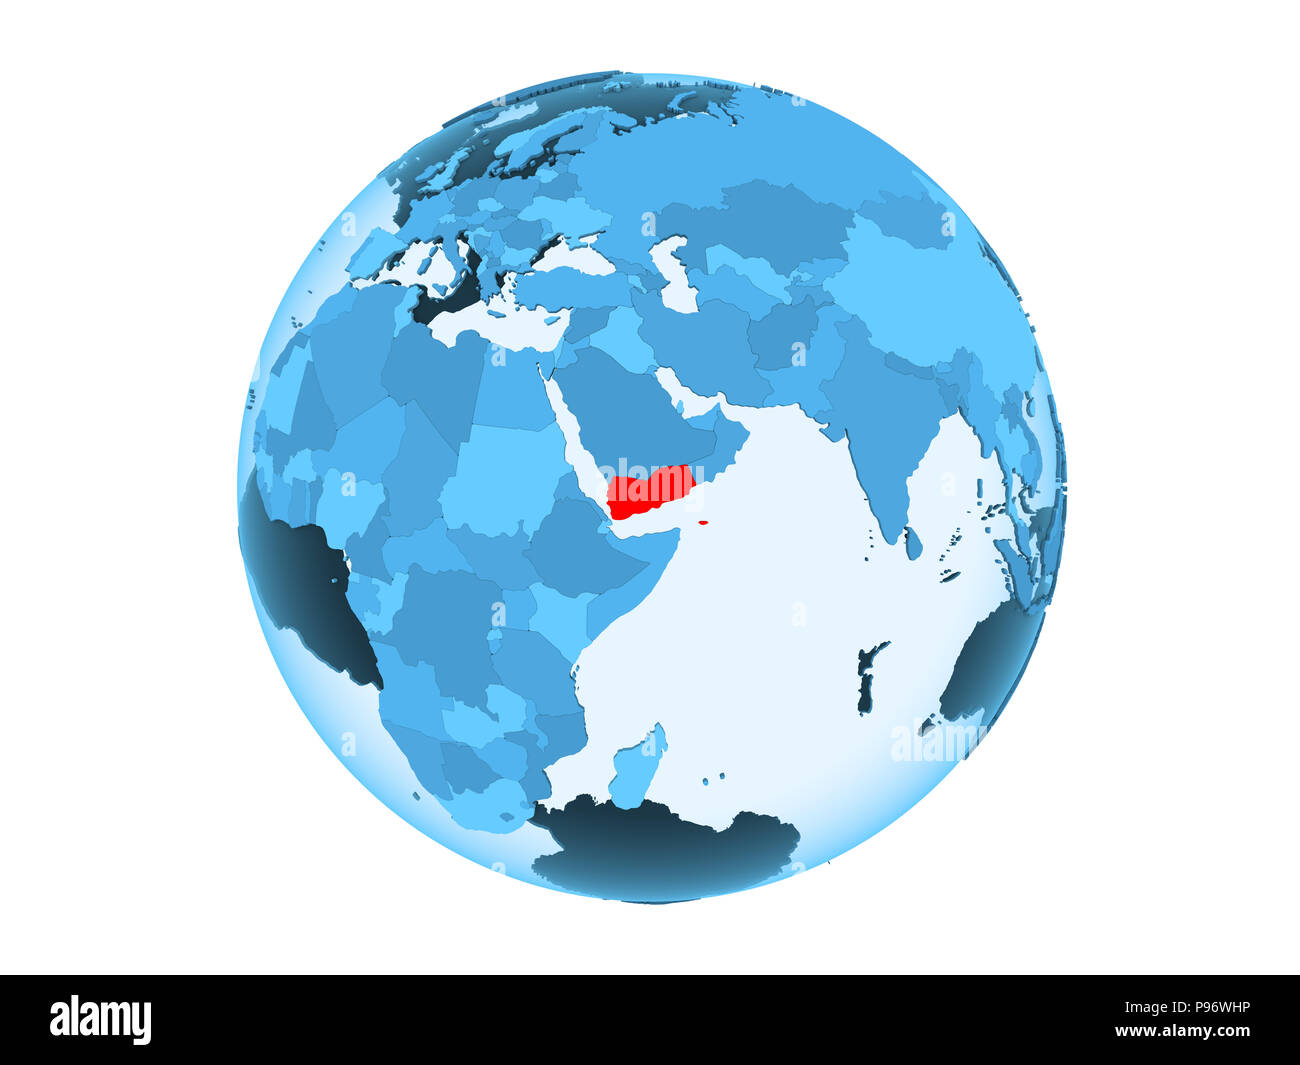 Yemen highlighted in red on blue political globe with transparent oceans. 3D illustration isolated on white background. - Stock Image